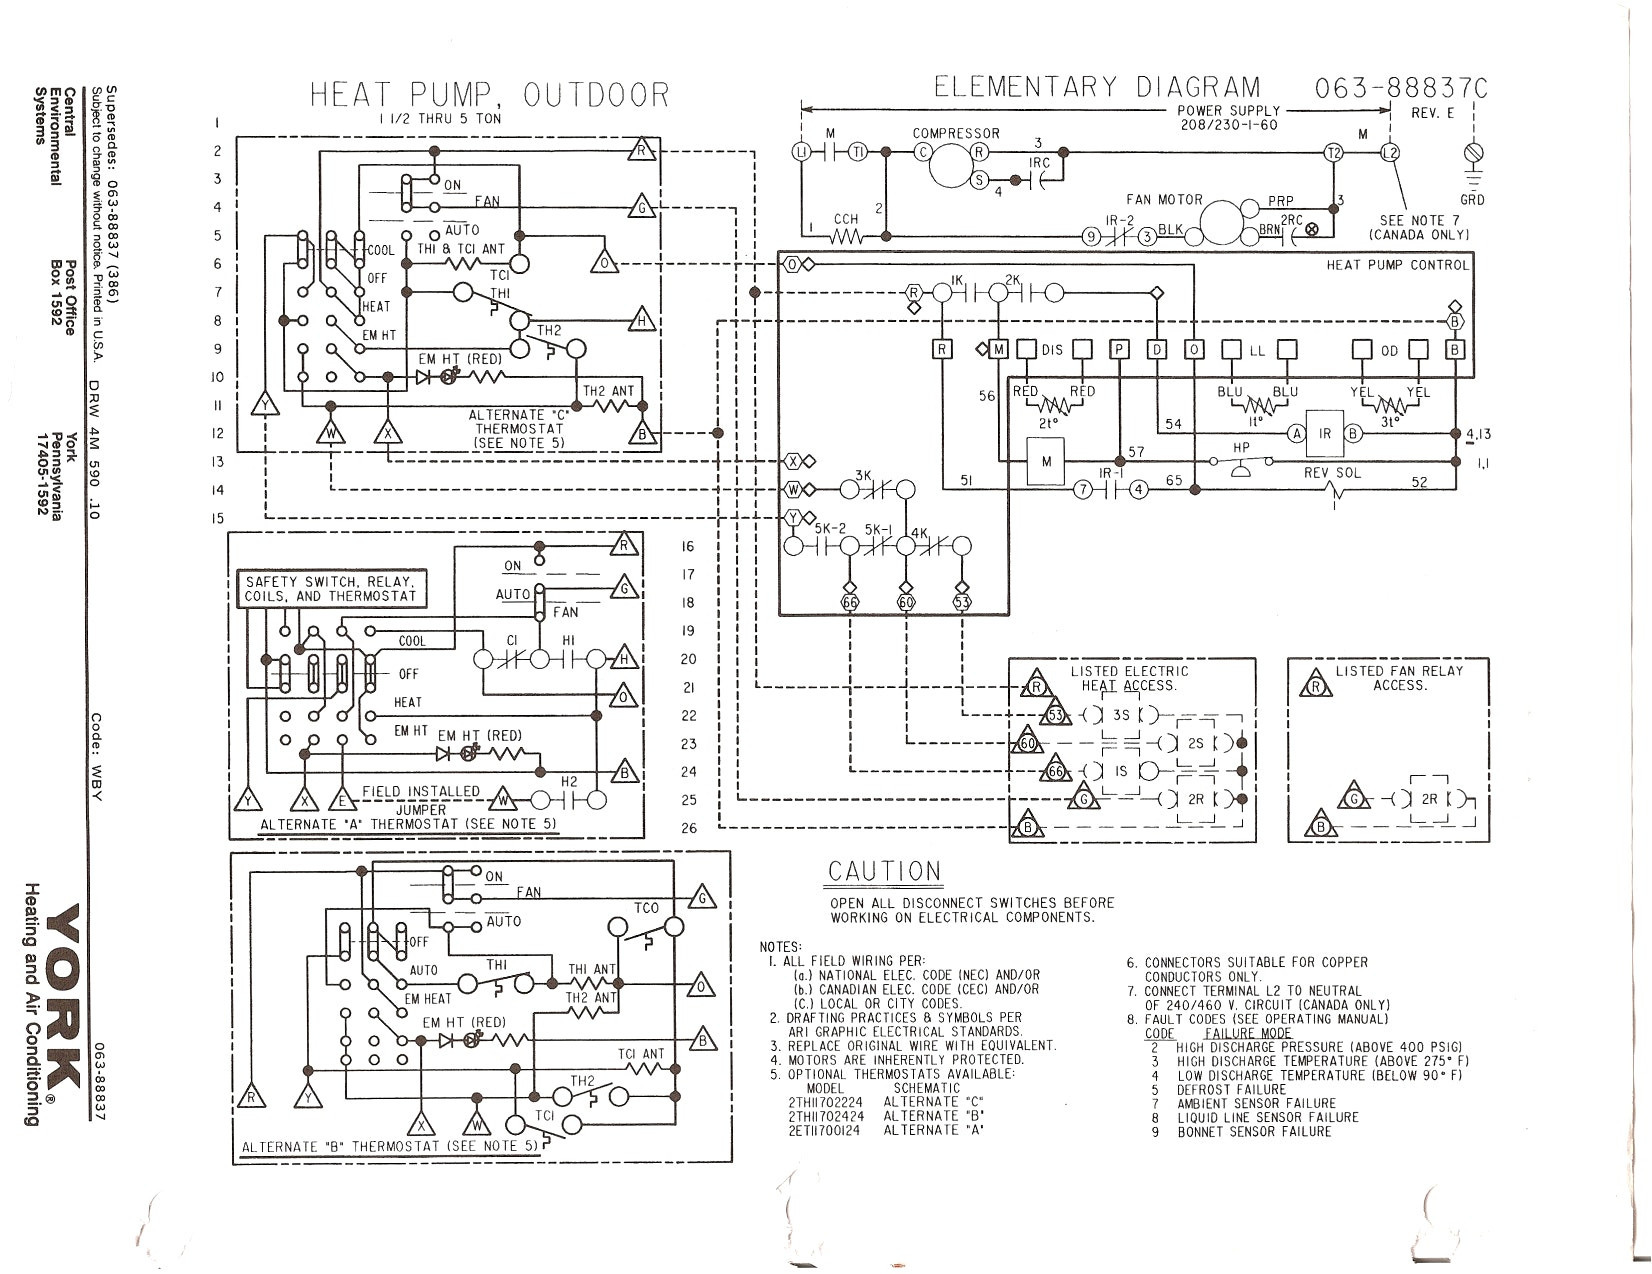 Incredible Heat Pump Thermostat Wiring Diagram Ruud Heat Pump Thermostat Wiring Wiring Cloud Orsalboapumohammedshrineorg